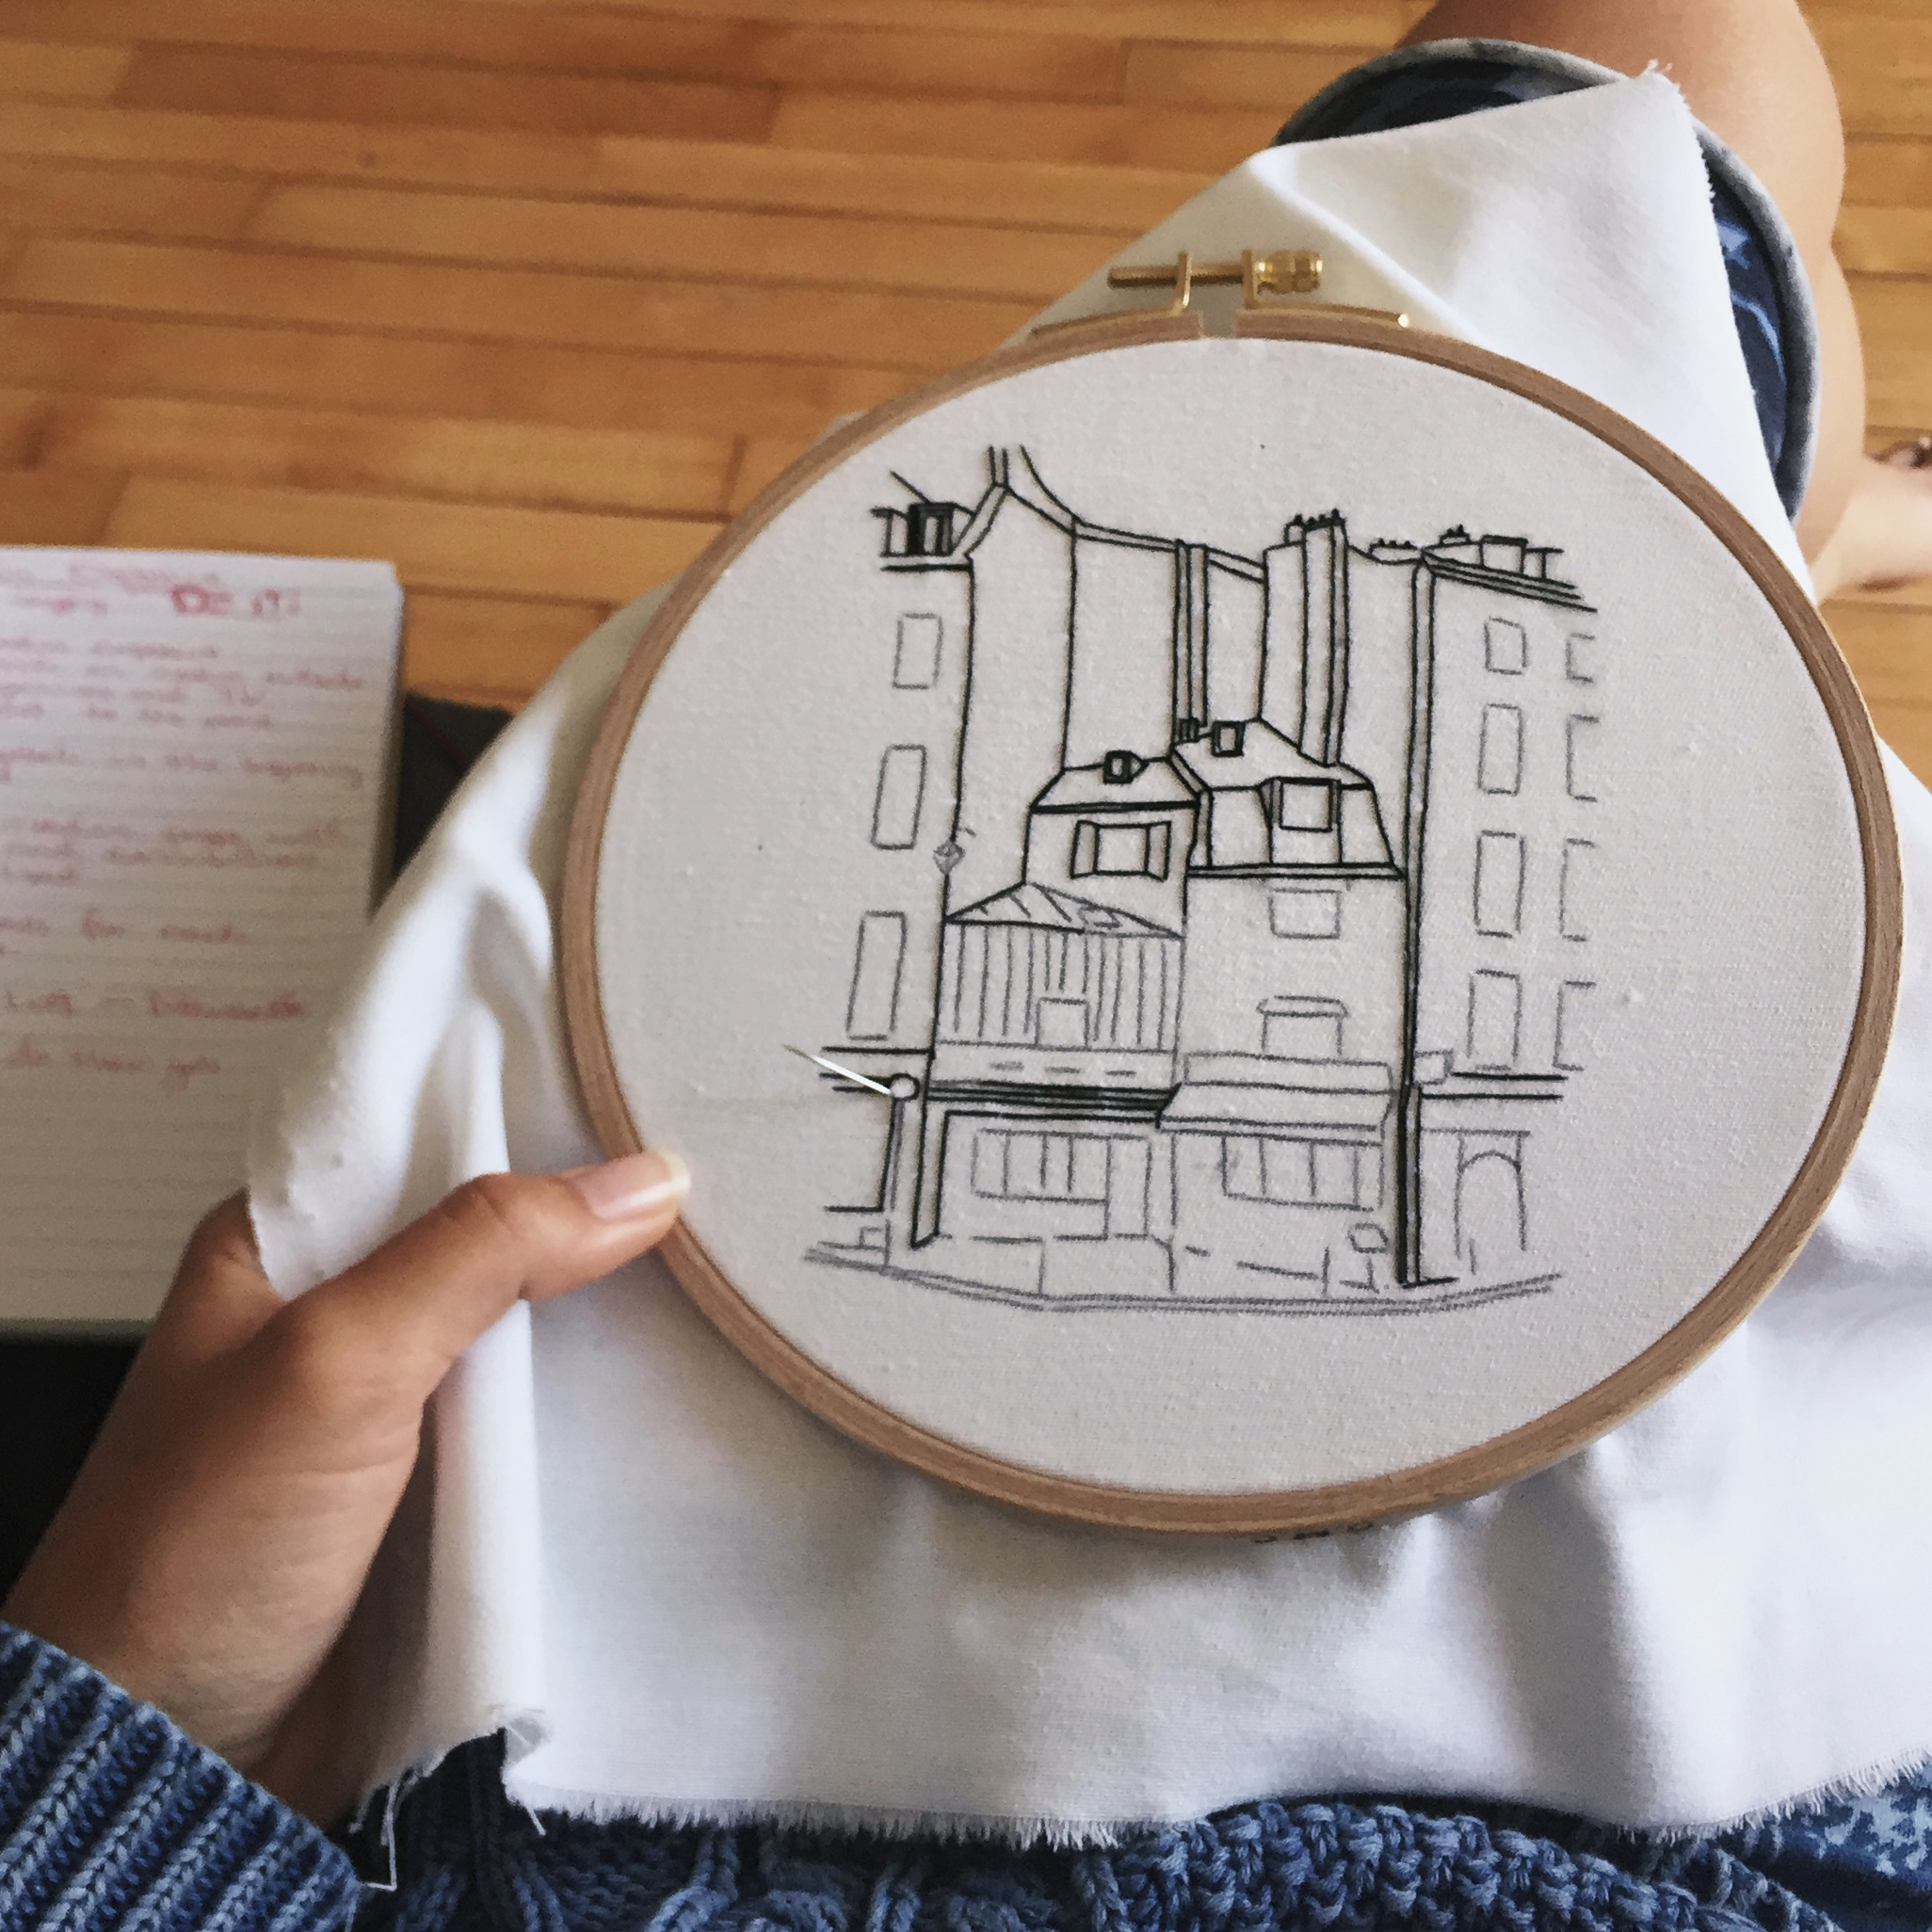 How to embroider backstitch